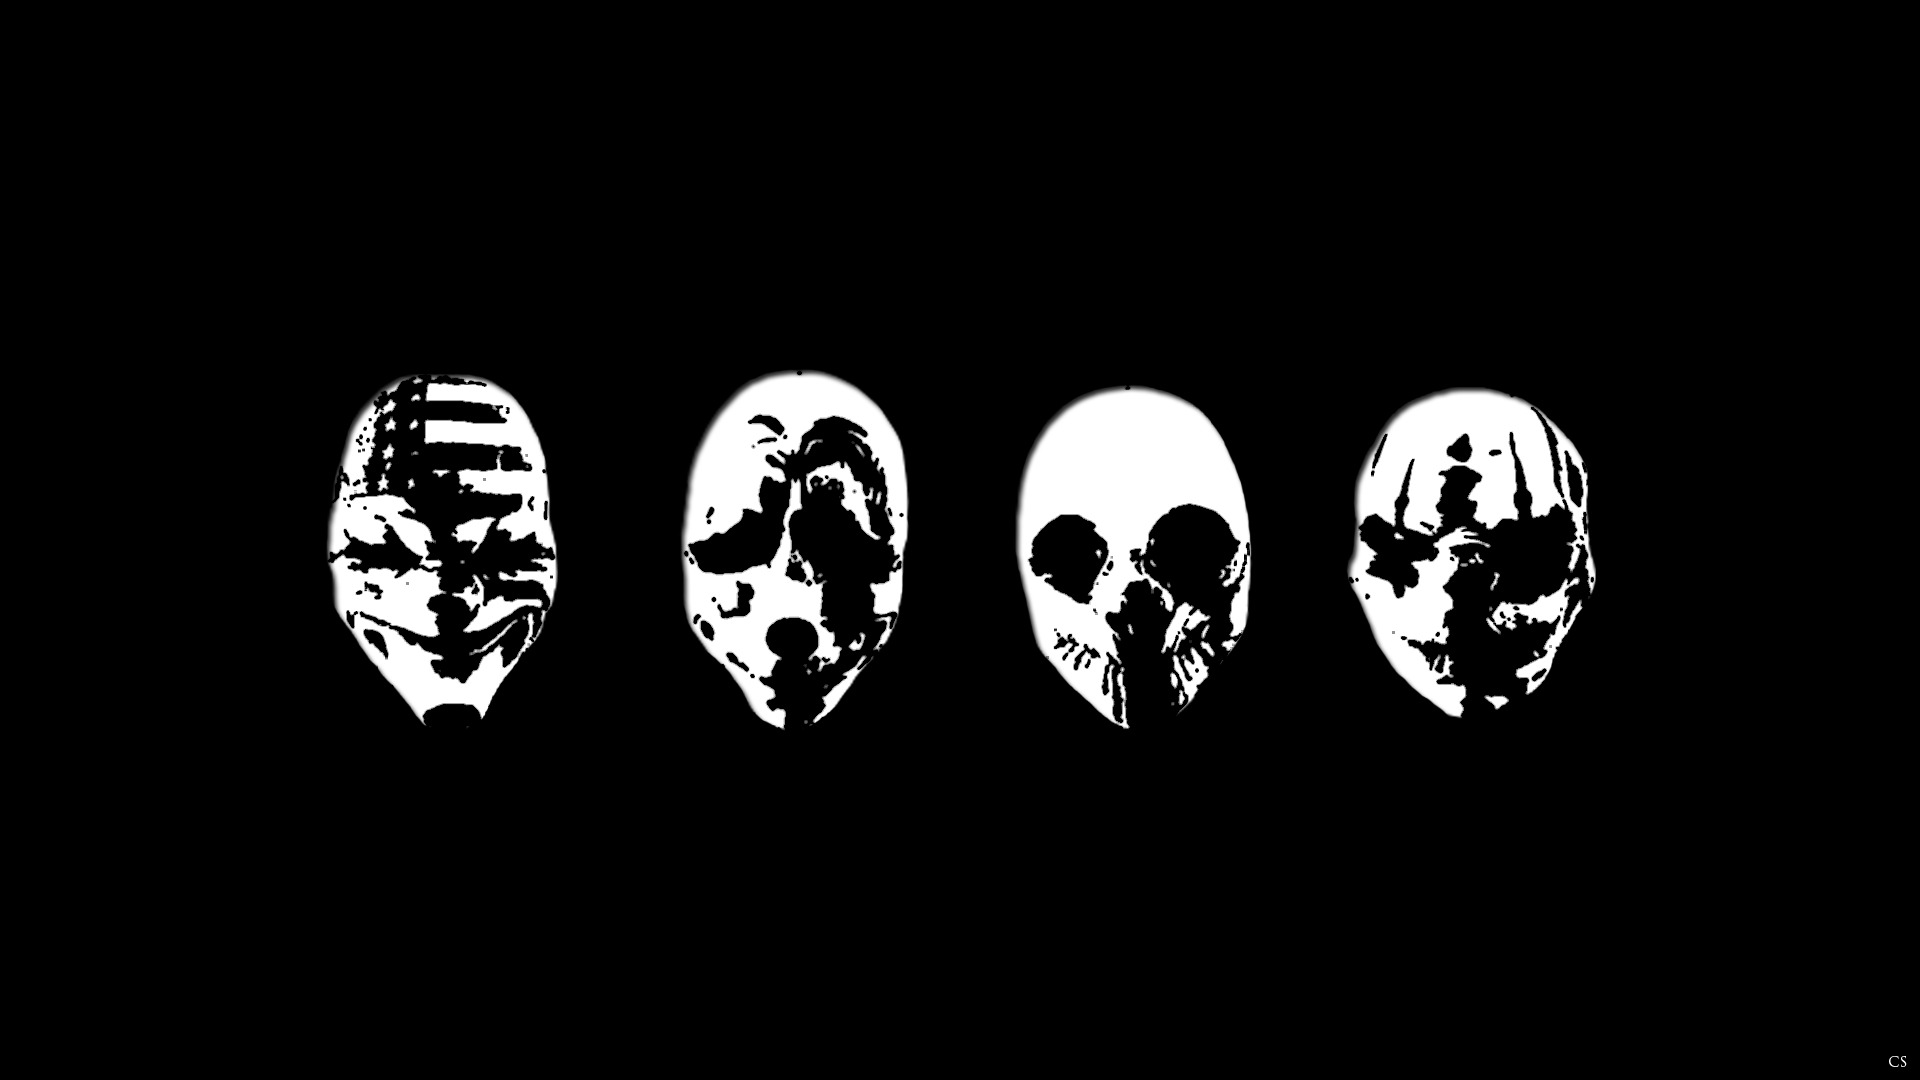 Payday Masks Wallpaper Hd Minimalist 4k Wallpapers Images